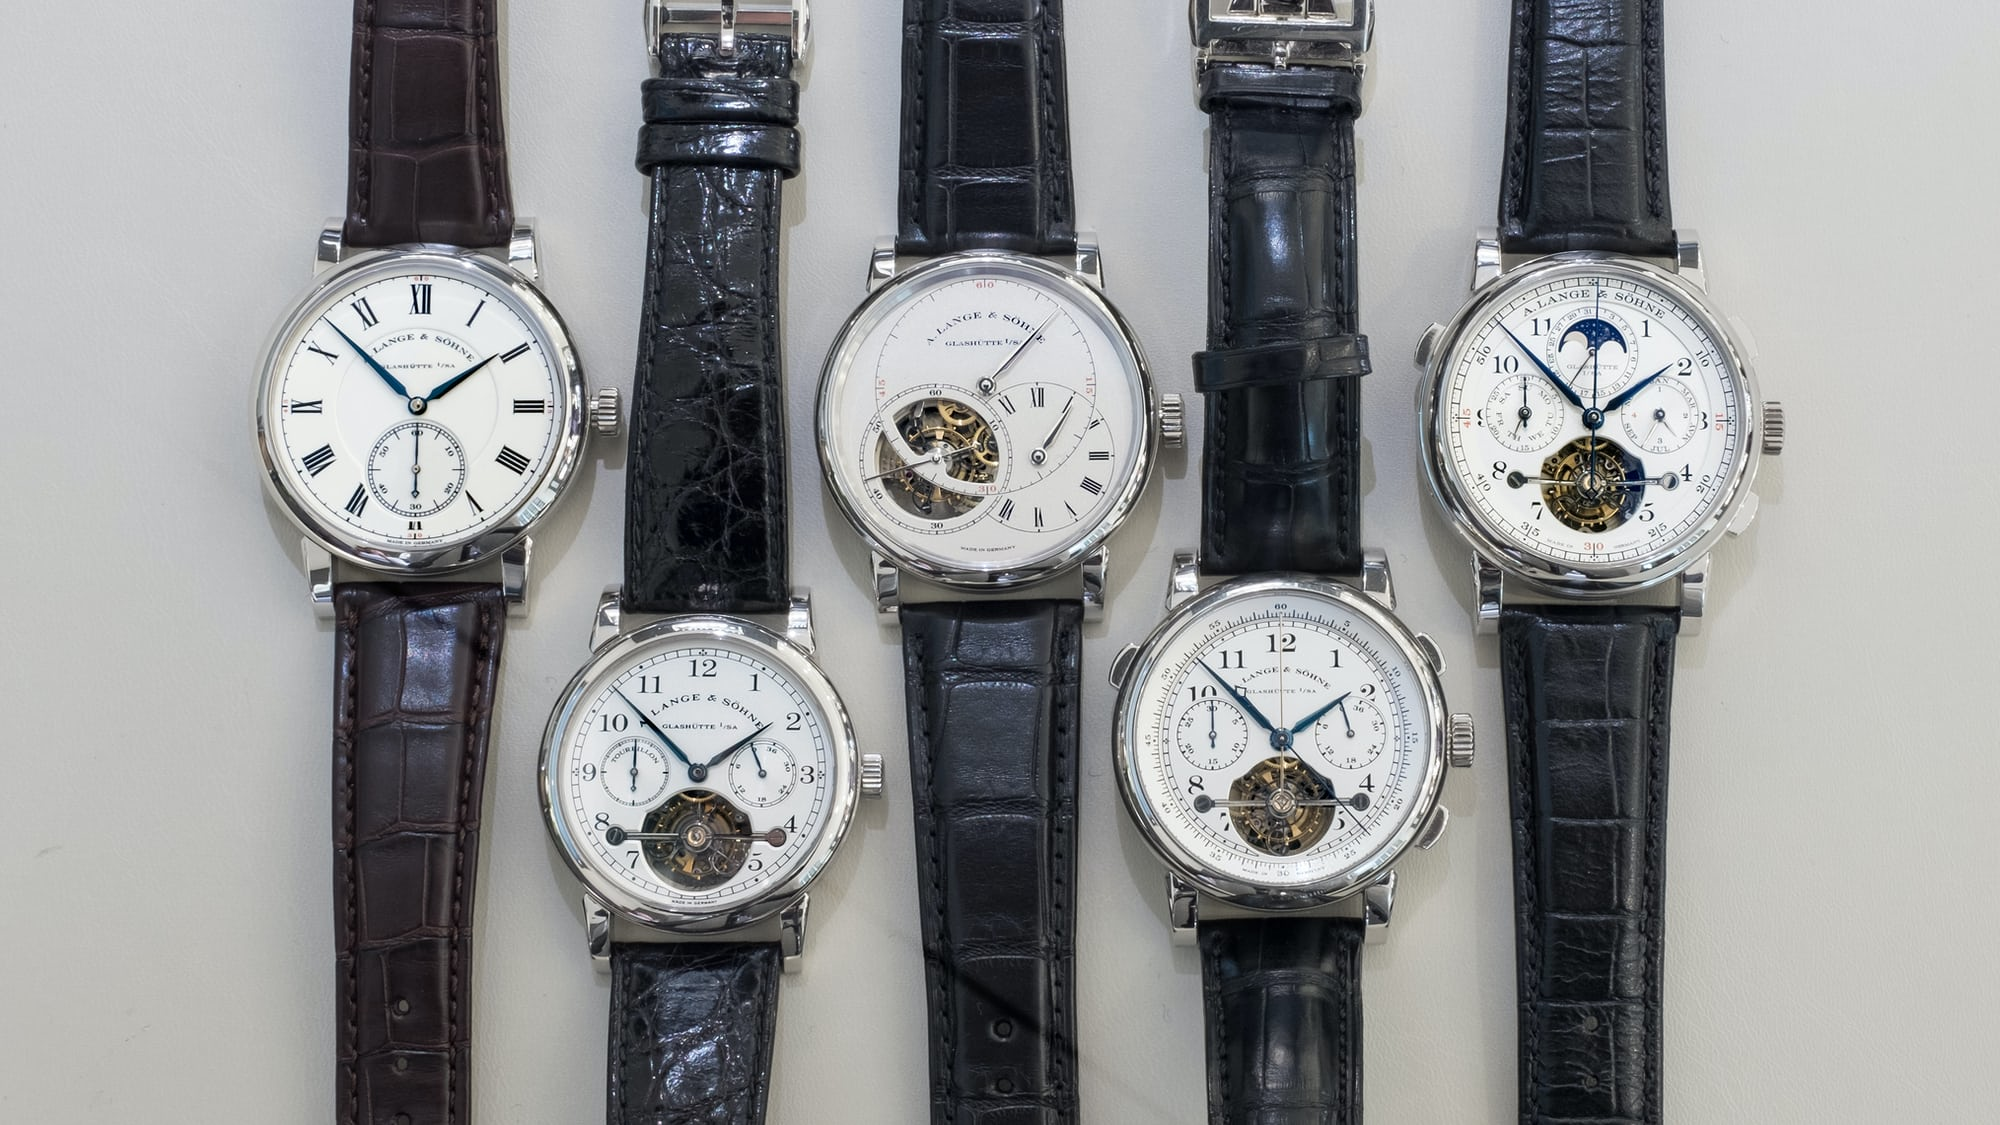 Plm hero2.jpg?ixlib=rails 1.1 Just Because: All Five A. Lange & Söhne 'Pour le Mérite' Watches In The Same Place, At The Same Time Just Because: All Five A. Lange & Söhne 'Pour le Mérite' Watches In The Same Place, At The Same Time plm hero2